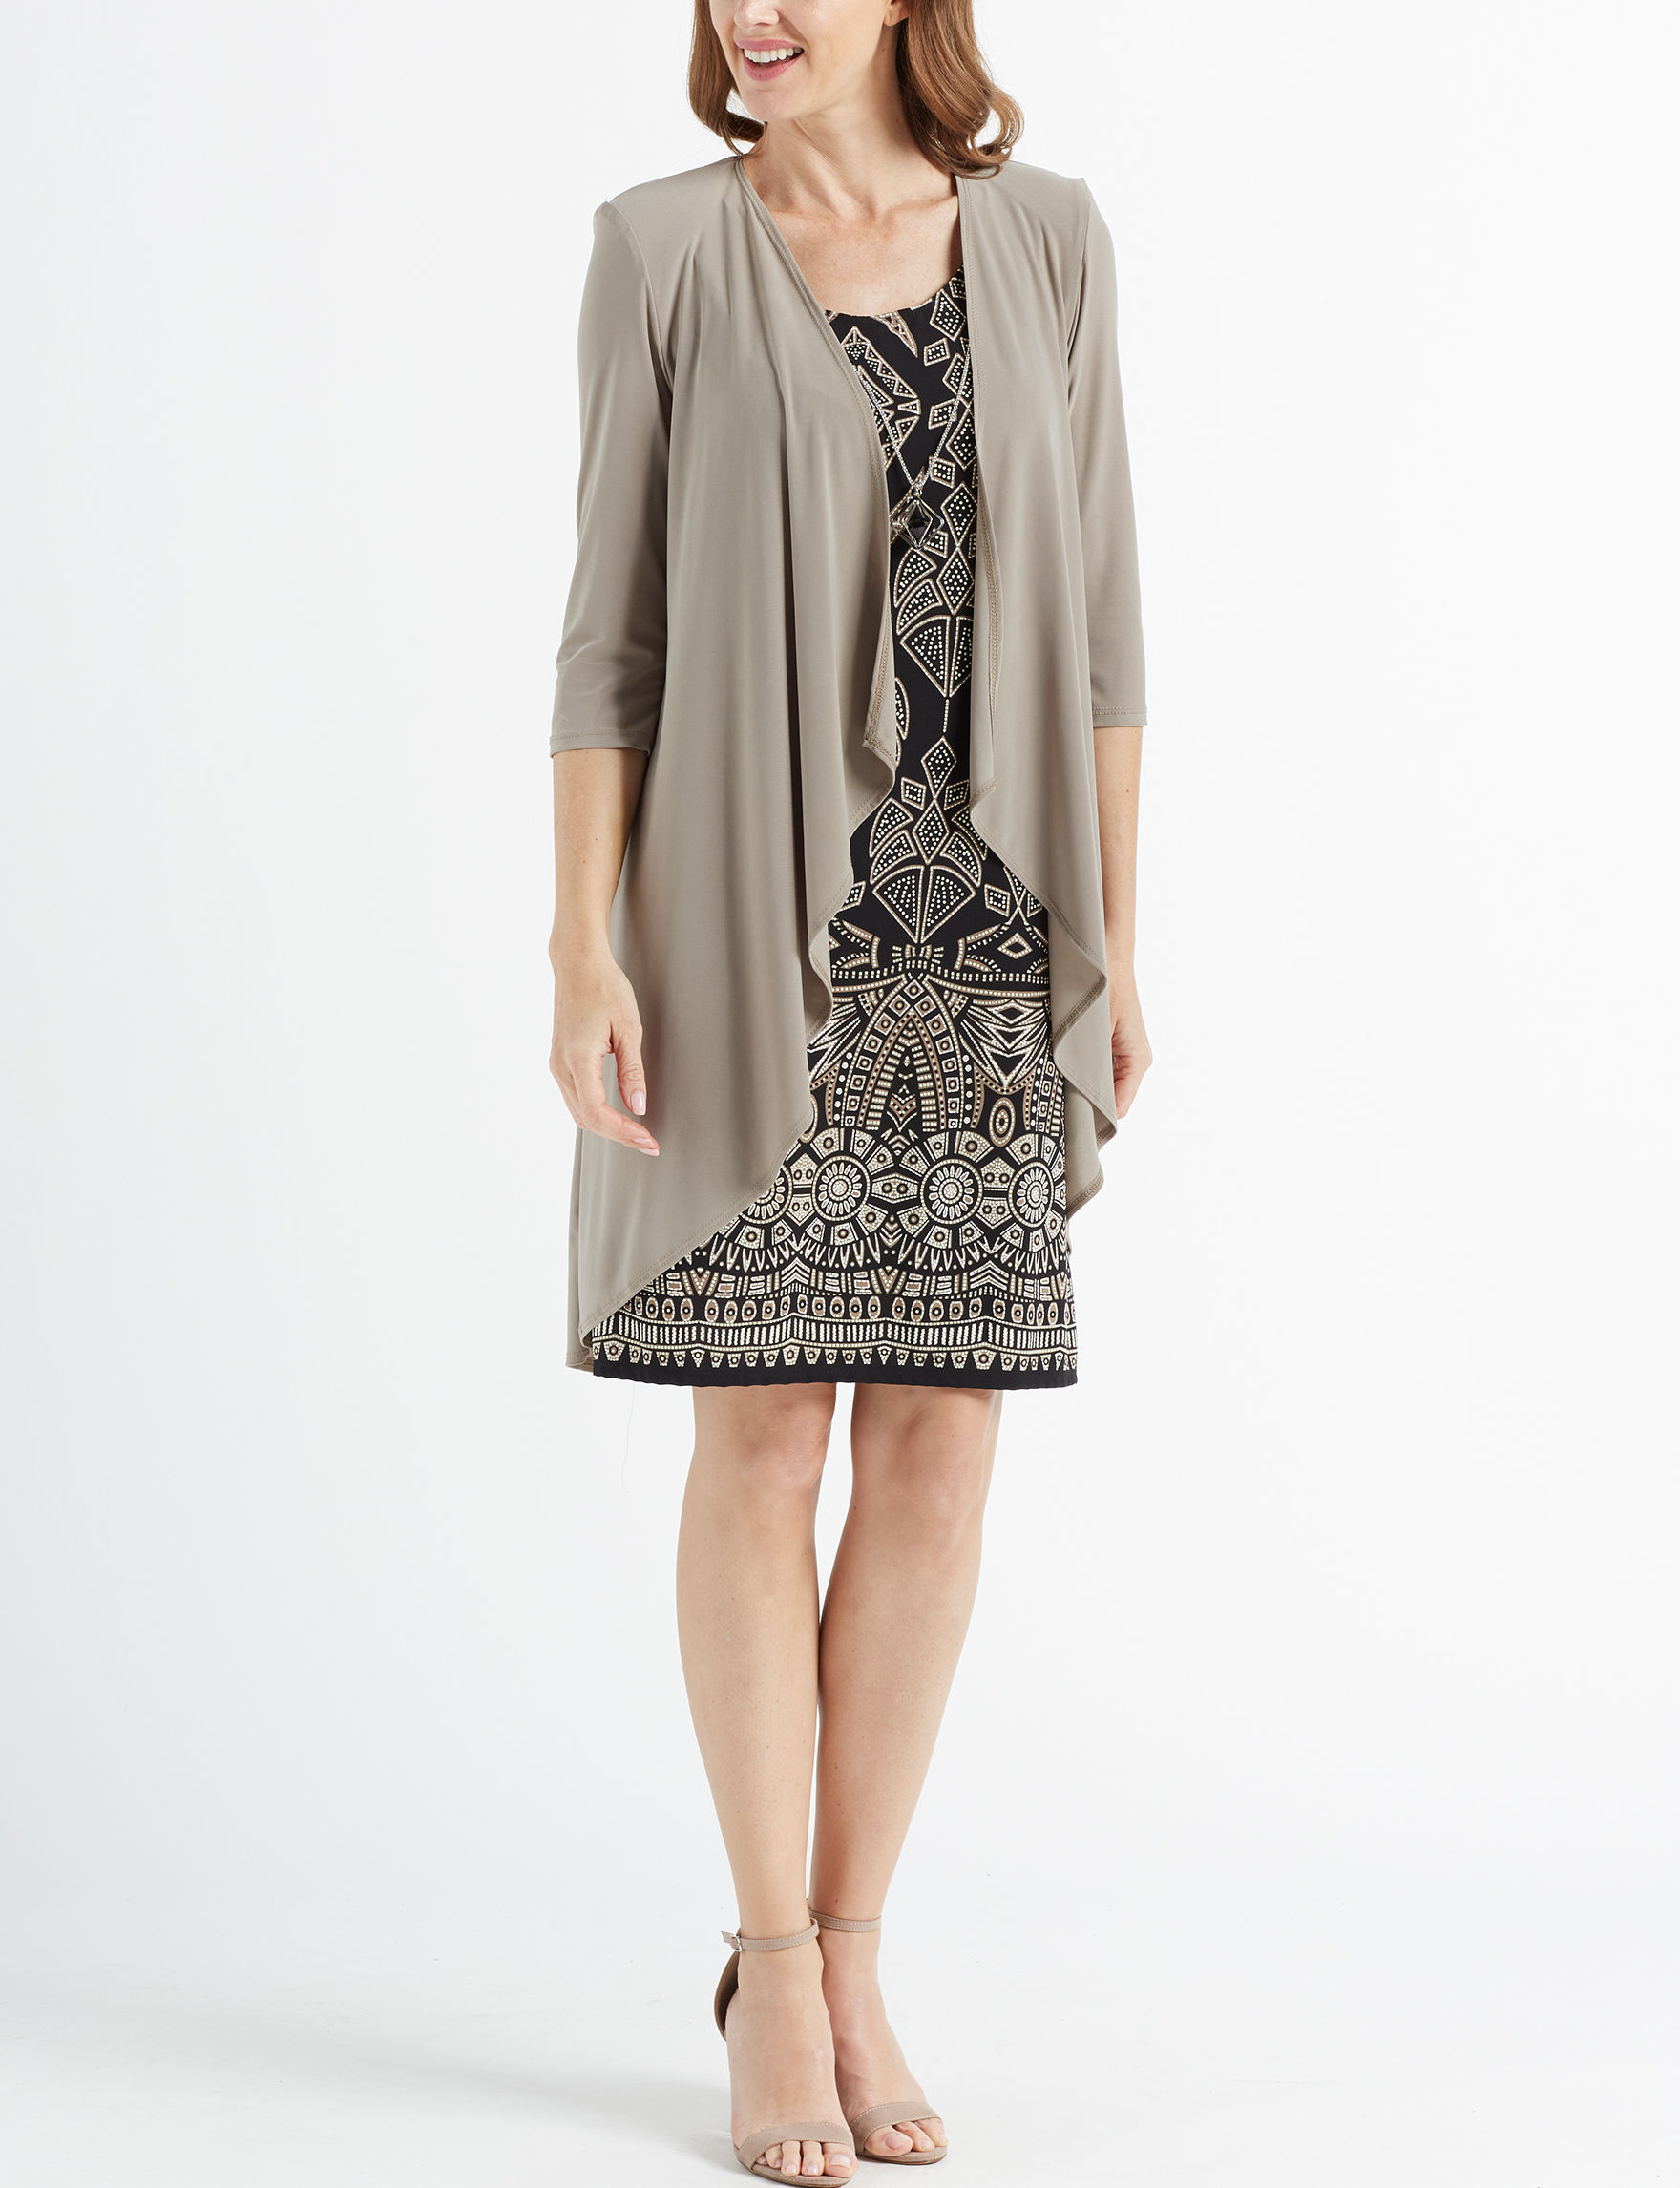 R & M Richards Taupe / Black Everyday & Casual Jacket Dresses